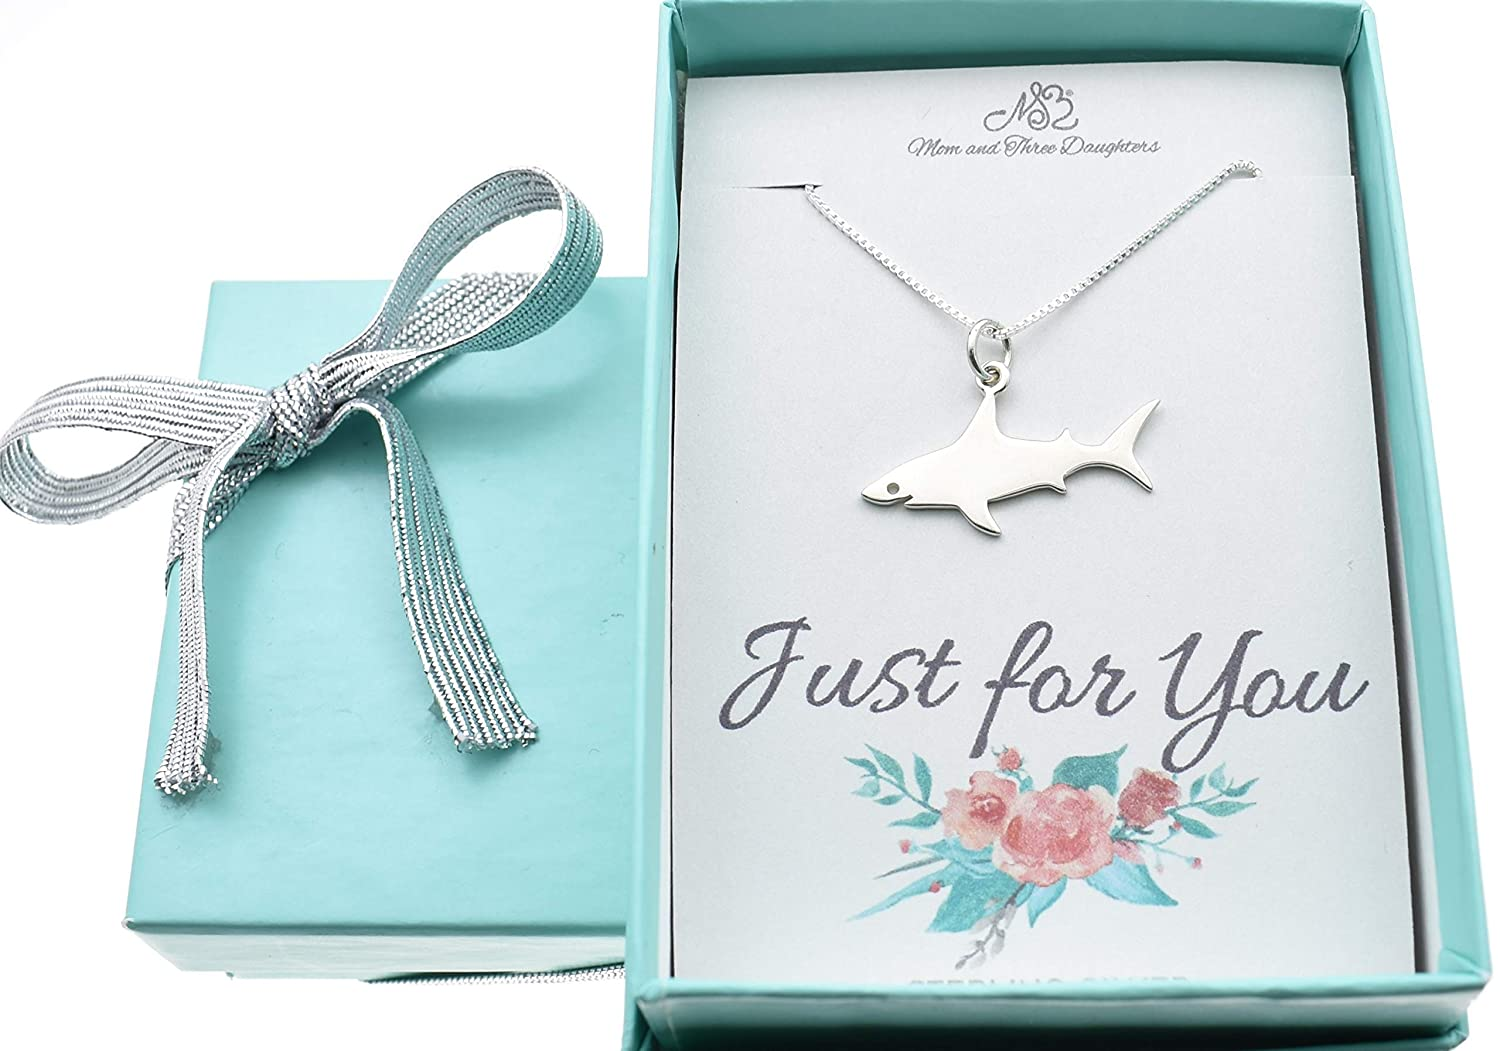 Silver Shark Charm Women's Necklace in Solid .925 Sterling Silver | Handmade 16 Inch Chain Box | Durable, Scratch Resistant Jewelry | Fabulous Gift for Girls or Teens